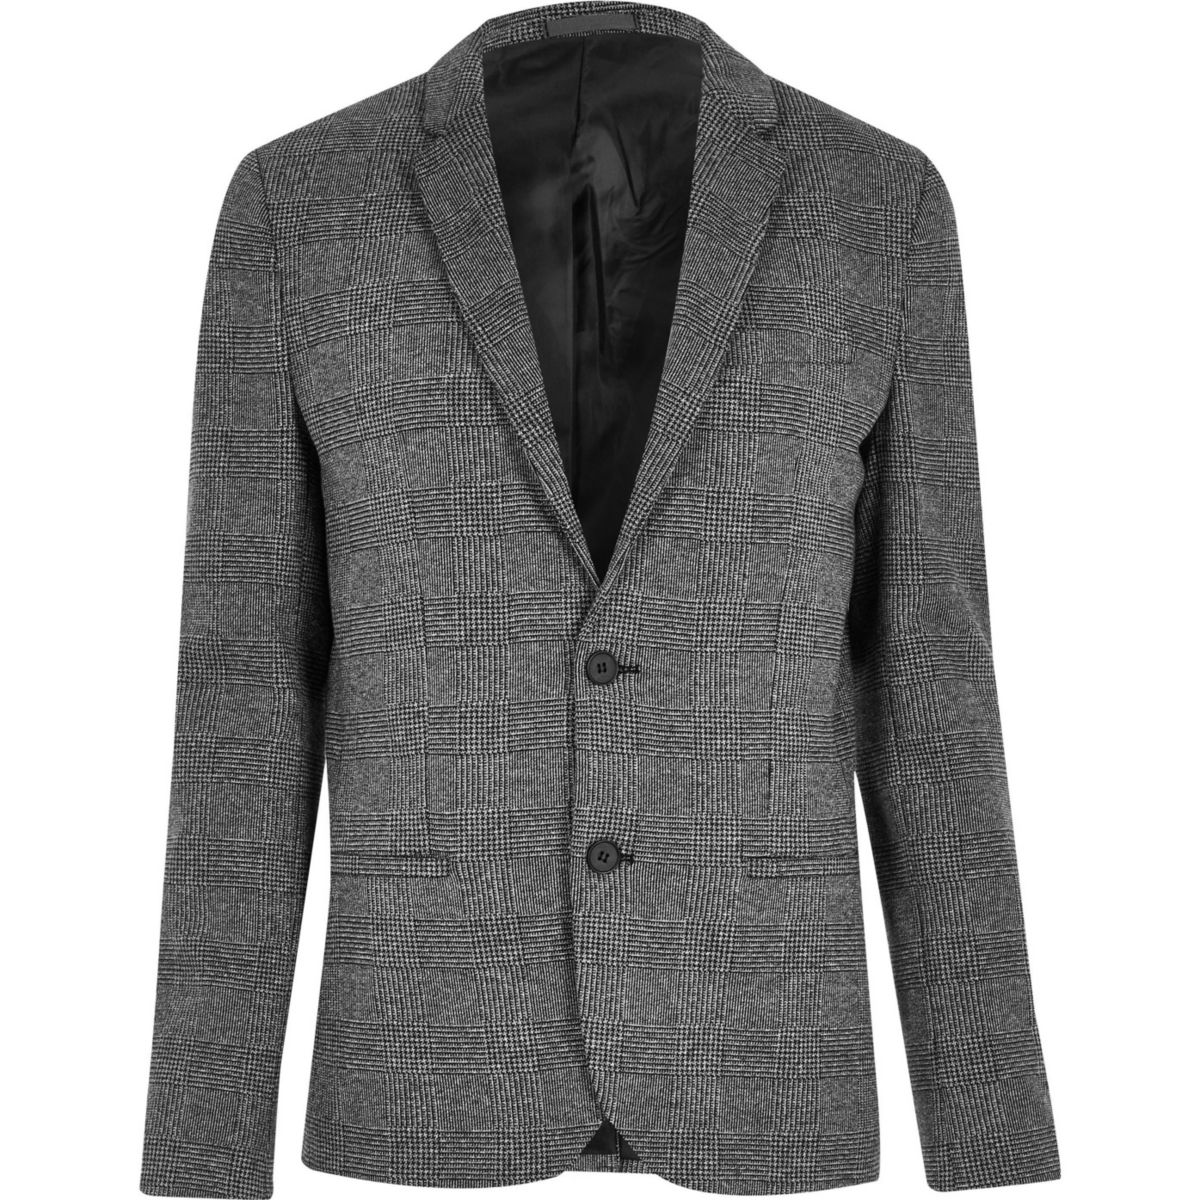 Big & Tall – Blazer à carreaux gris